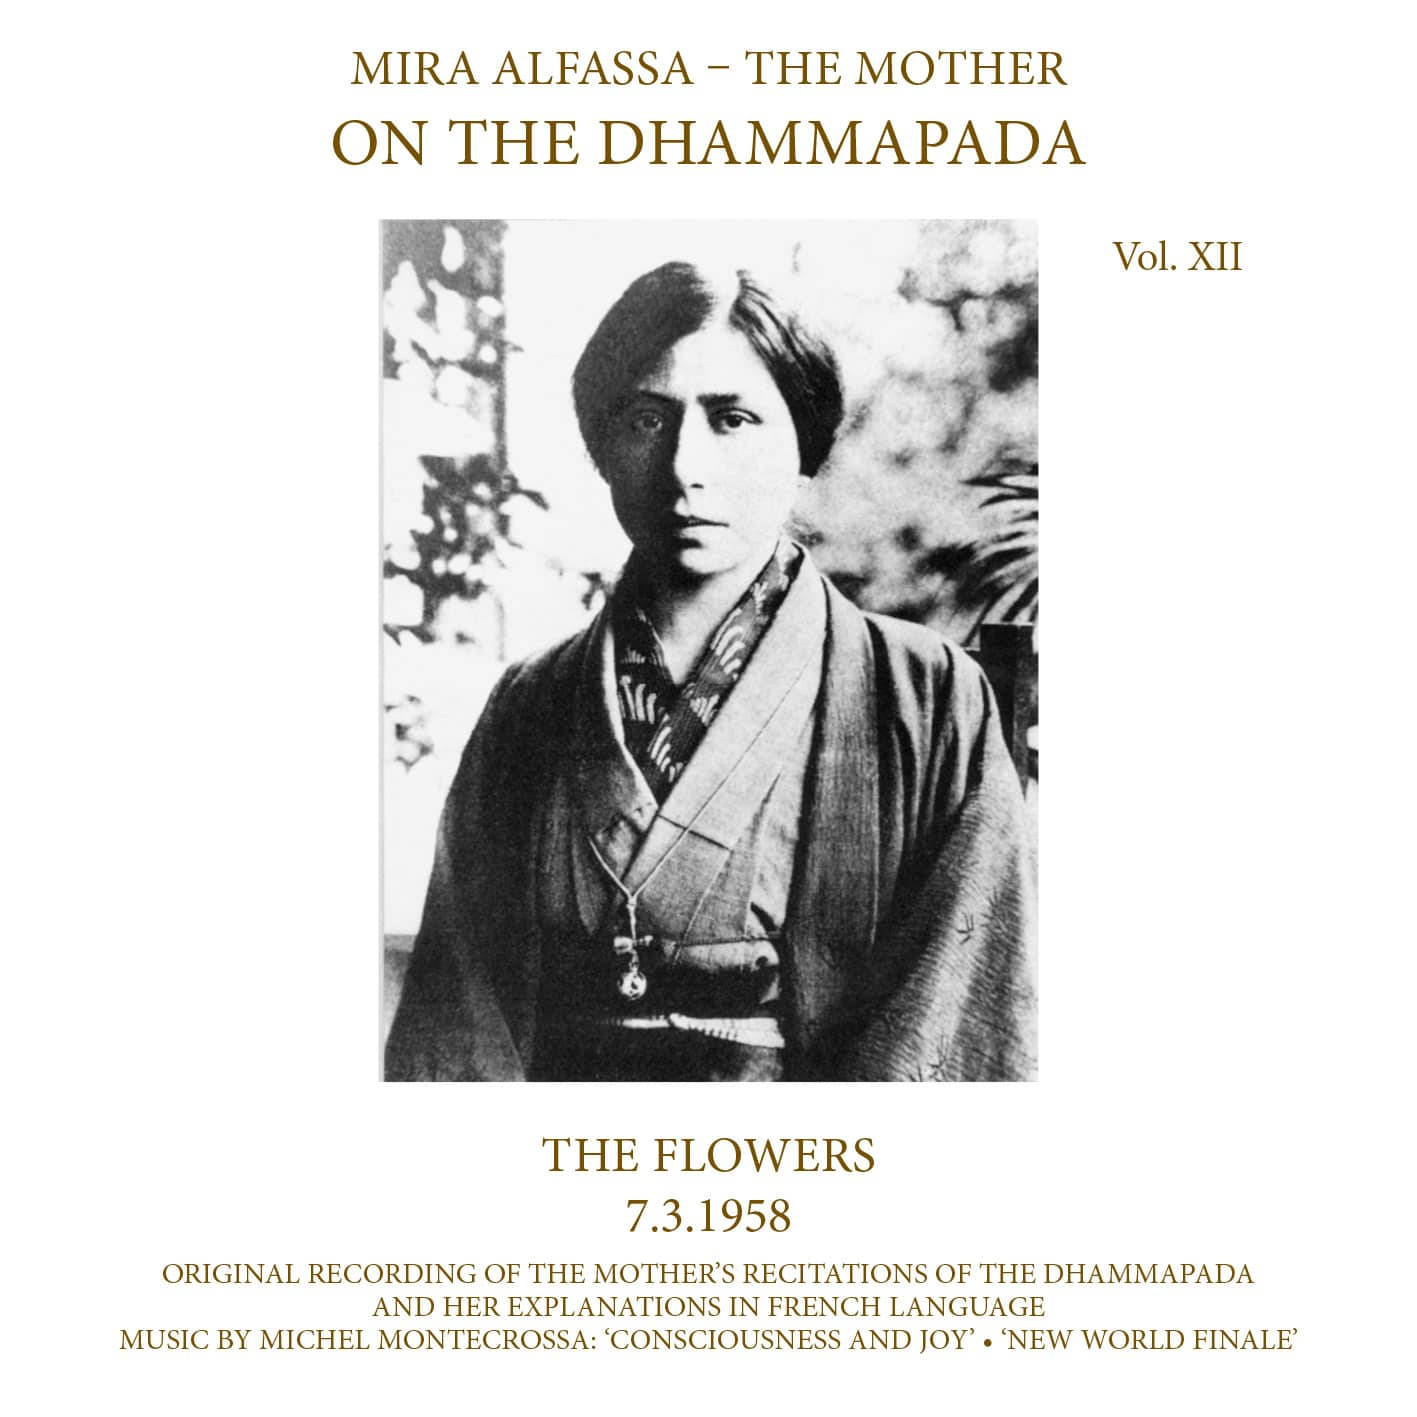 Vol 12 The Flowers